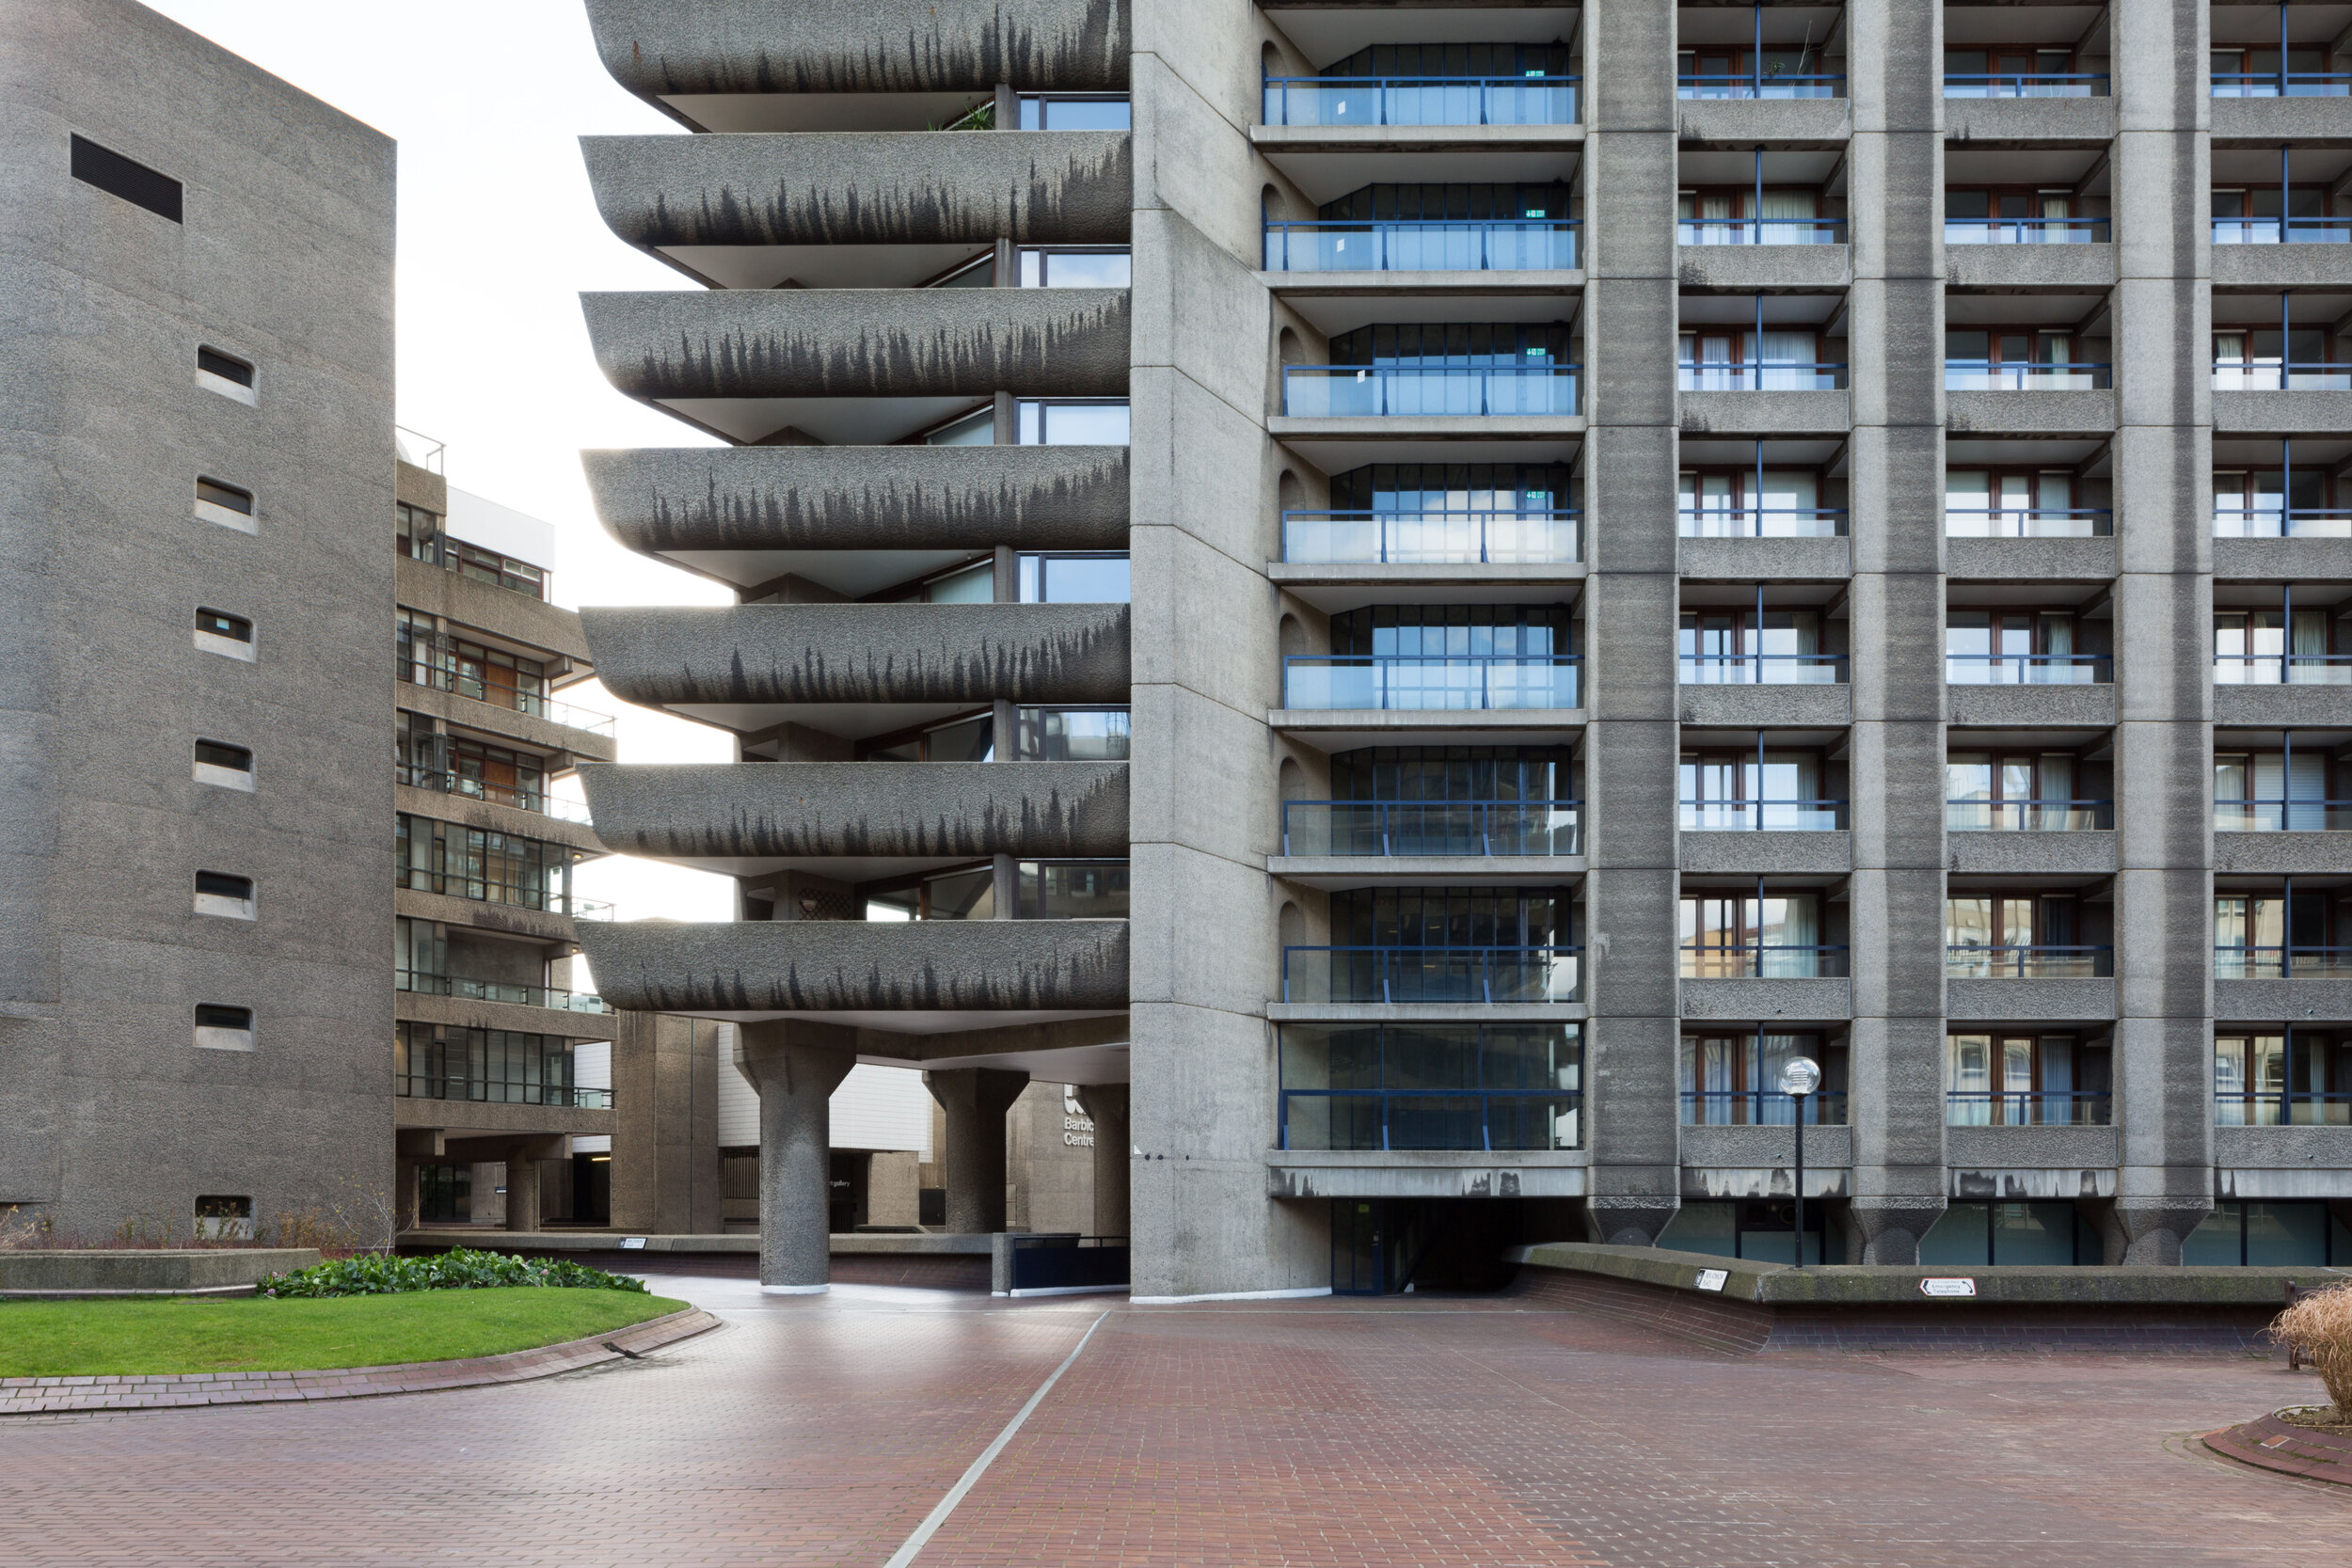 The Barbican Center 180125 061.jpg